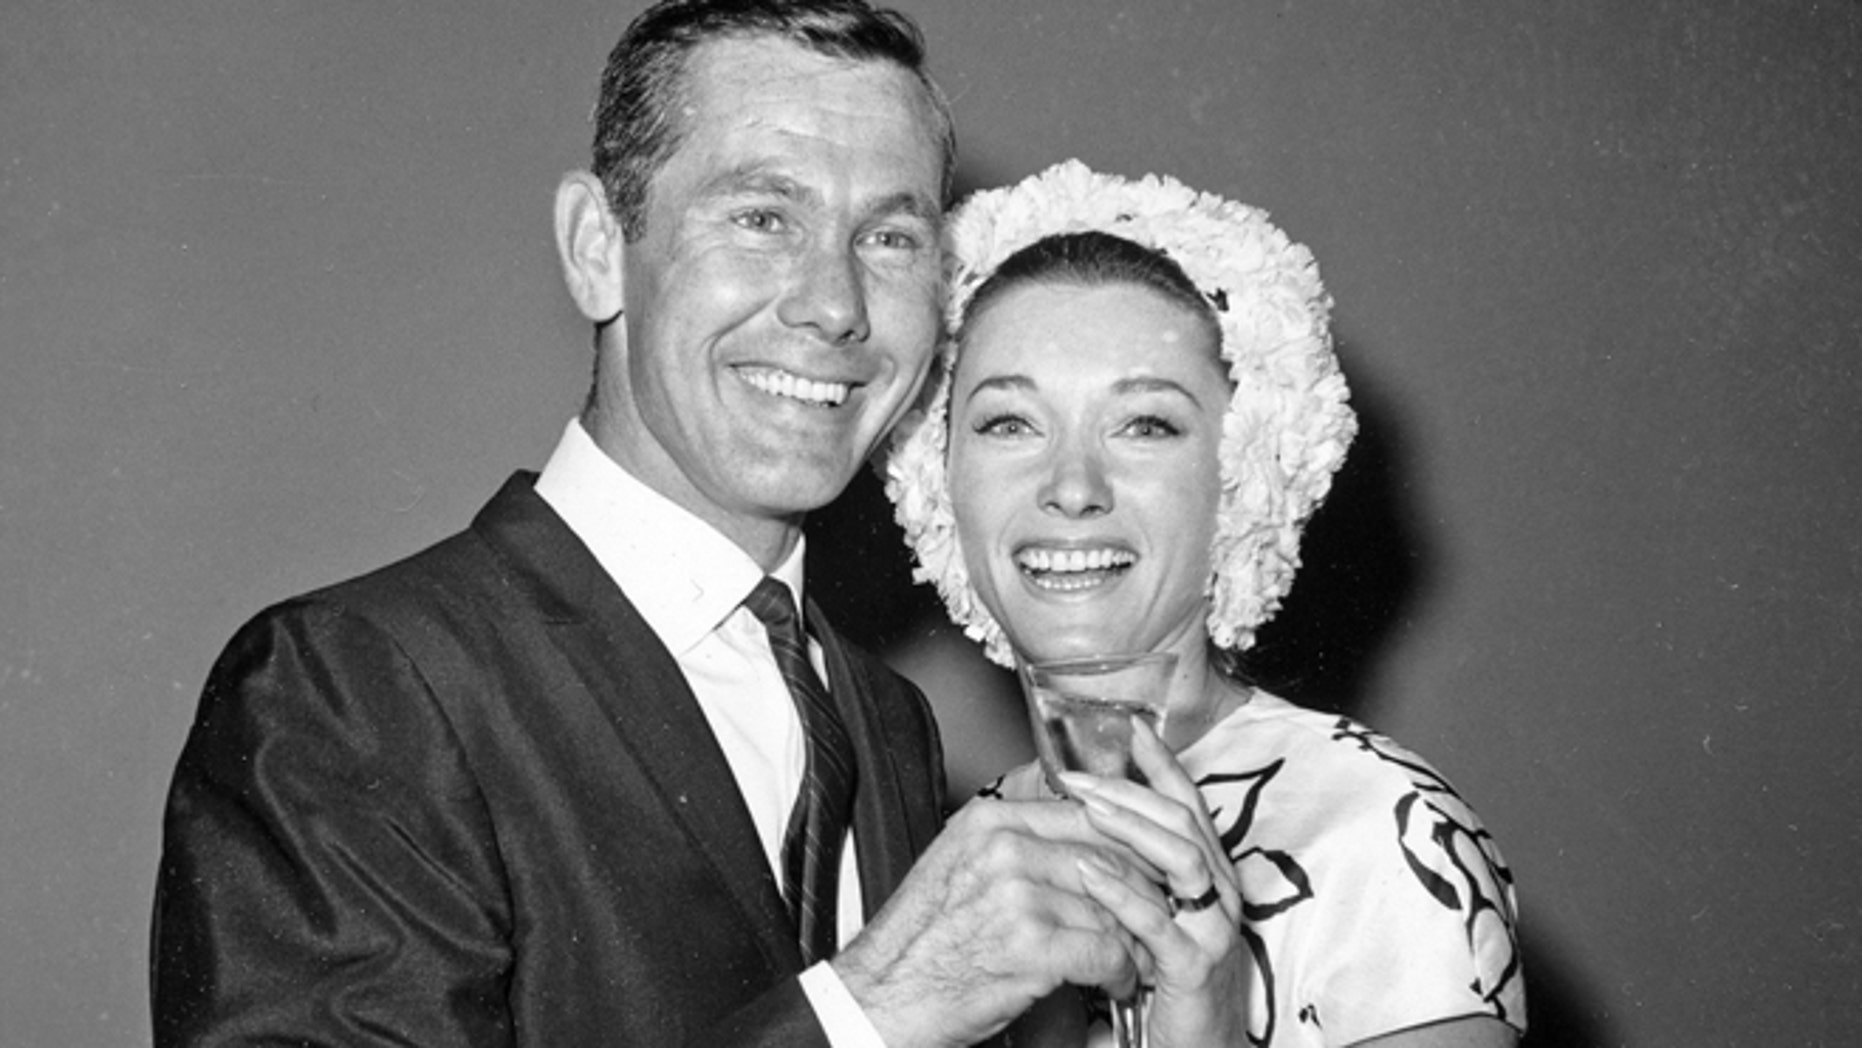 This Aug. 17, 1963 file photo shows comedian Johnny Carson and his bride, former television personality and model Joanne Copeland, at a reception in his apartment after their wedding at in New York.